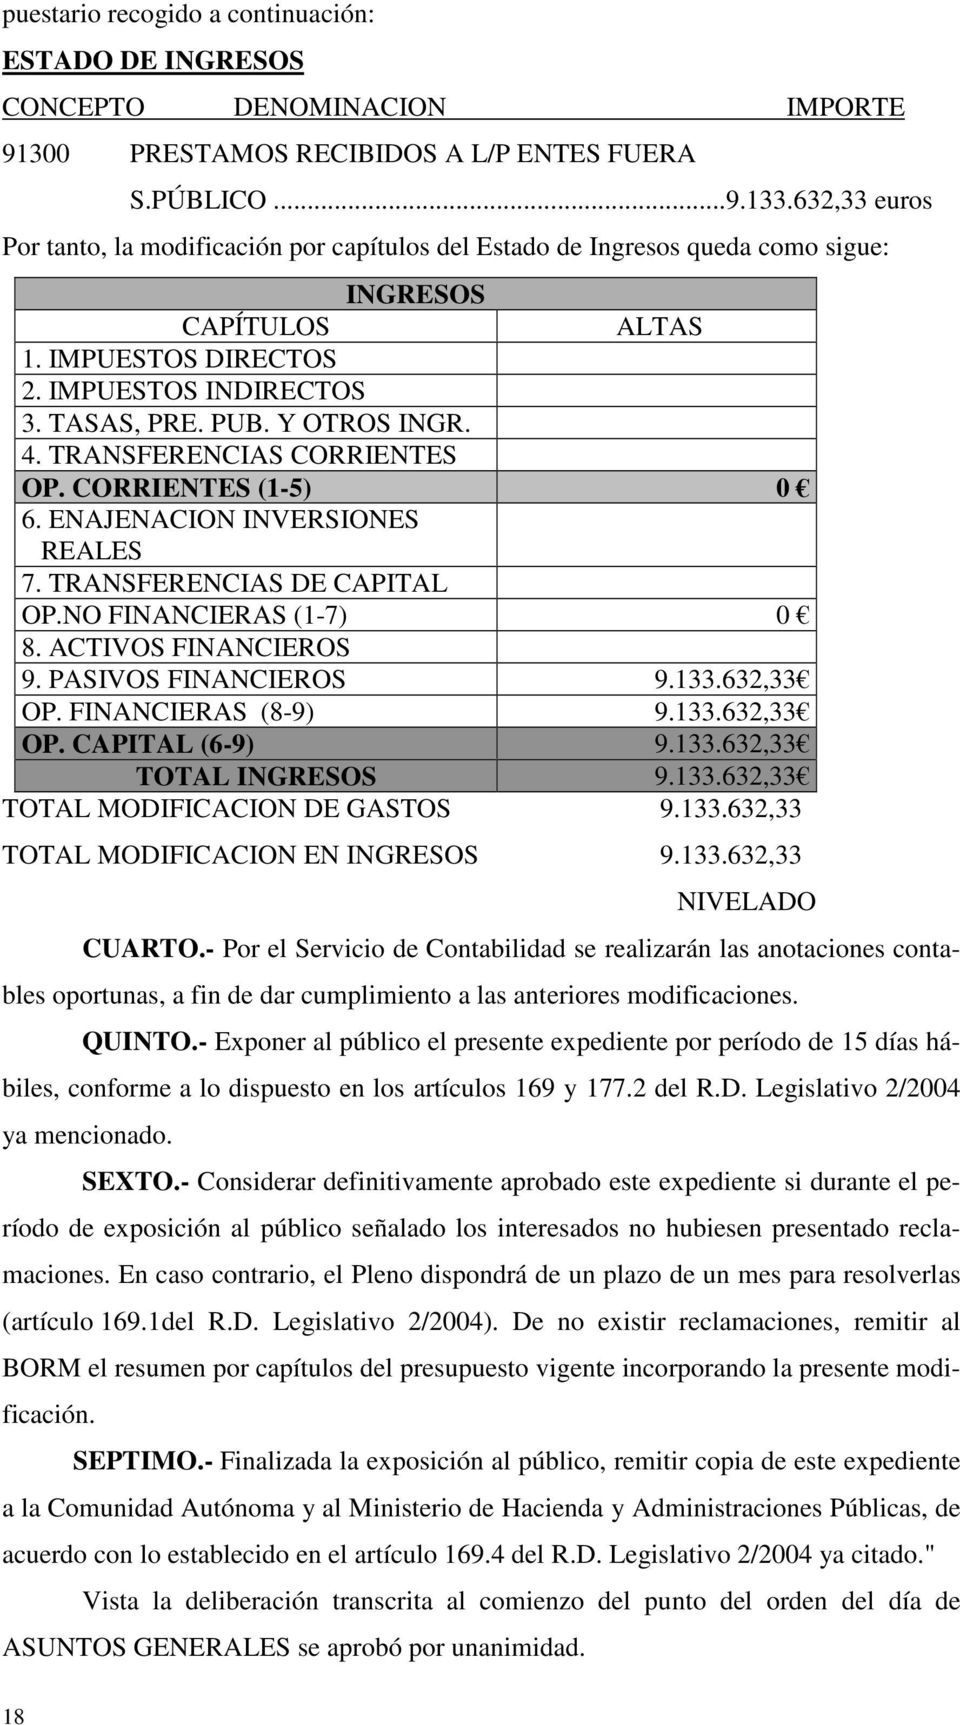 4. TRANSFERENCIAS CORRIENTES OP. CORRIENTES (1-5) 0 6. ENAJENACION INVERSIONES REALES 7. TRANSFERENCIAS DE CAPITAL OP.NO FINANCIERAS (1-7) 0 8. ACTIVOS FINANCIEROS 9. PASIVOS FINANCIEROS 9.133.